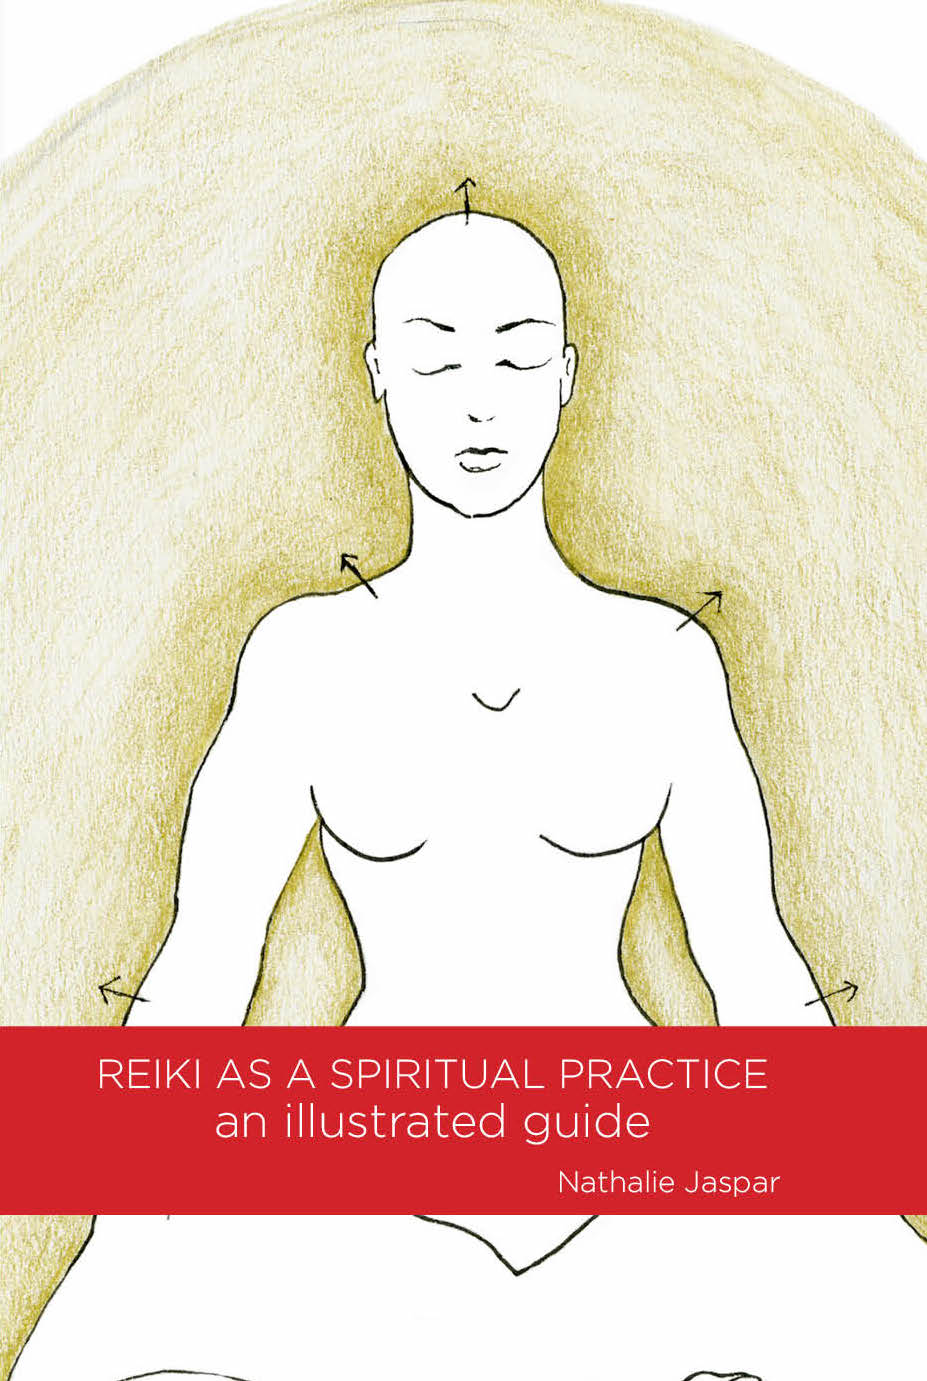 Get my new illustrated guide for Reiki practice. It includes fully illustrated how-tos to the hands-on healing protocol and 10 additional traditional Japanese Reiki meditations. - Discount for bulk orders available.